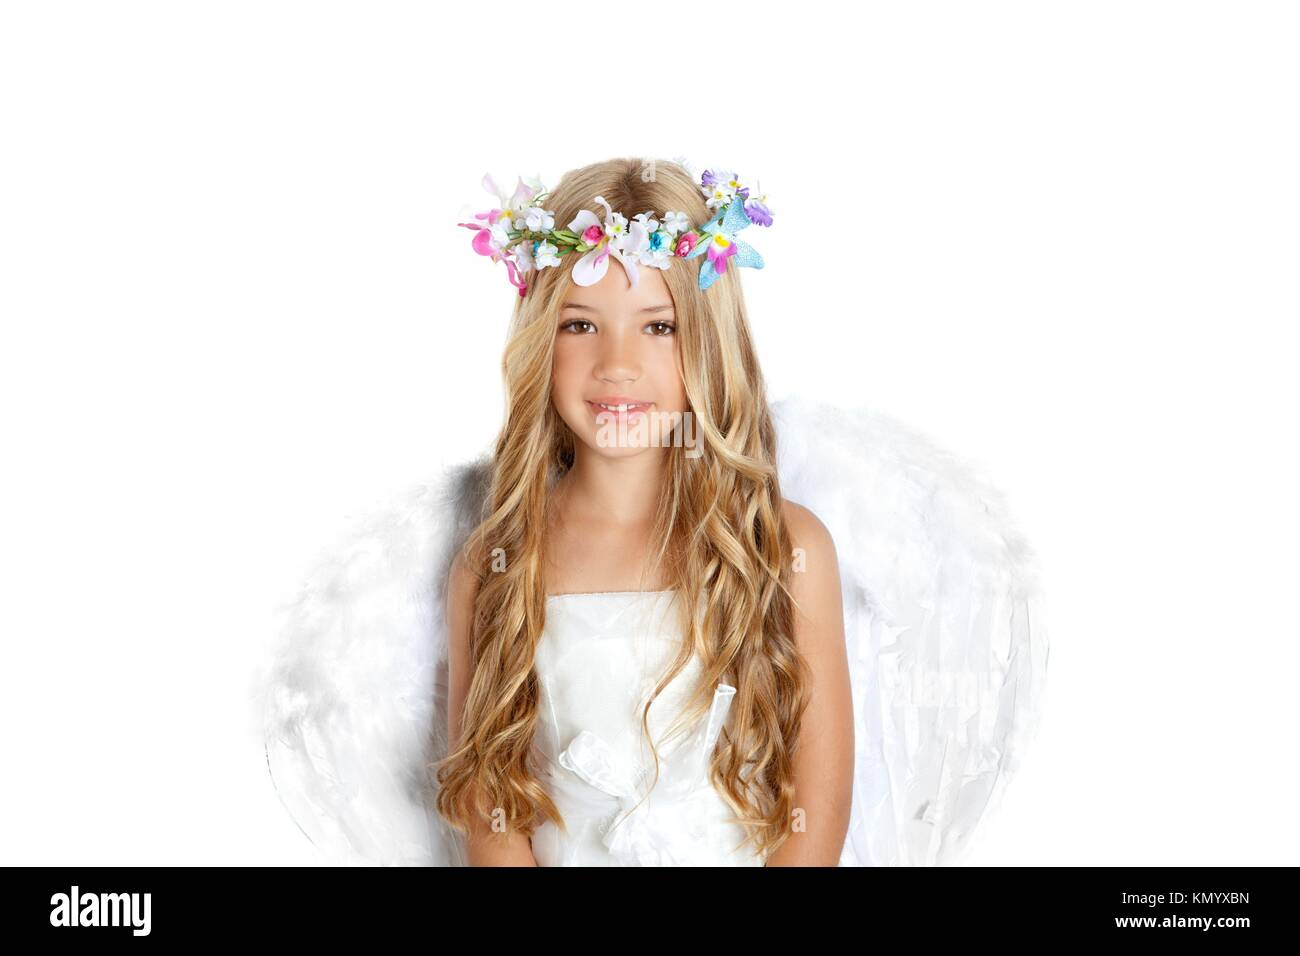 Little Angel With Flowers Stock Photos Little Angel With Flowers